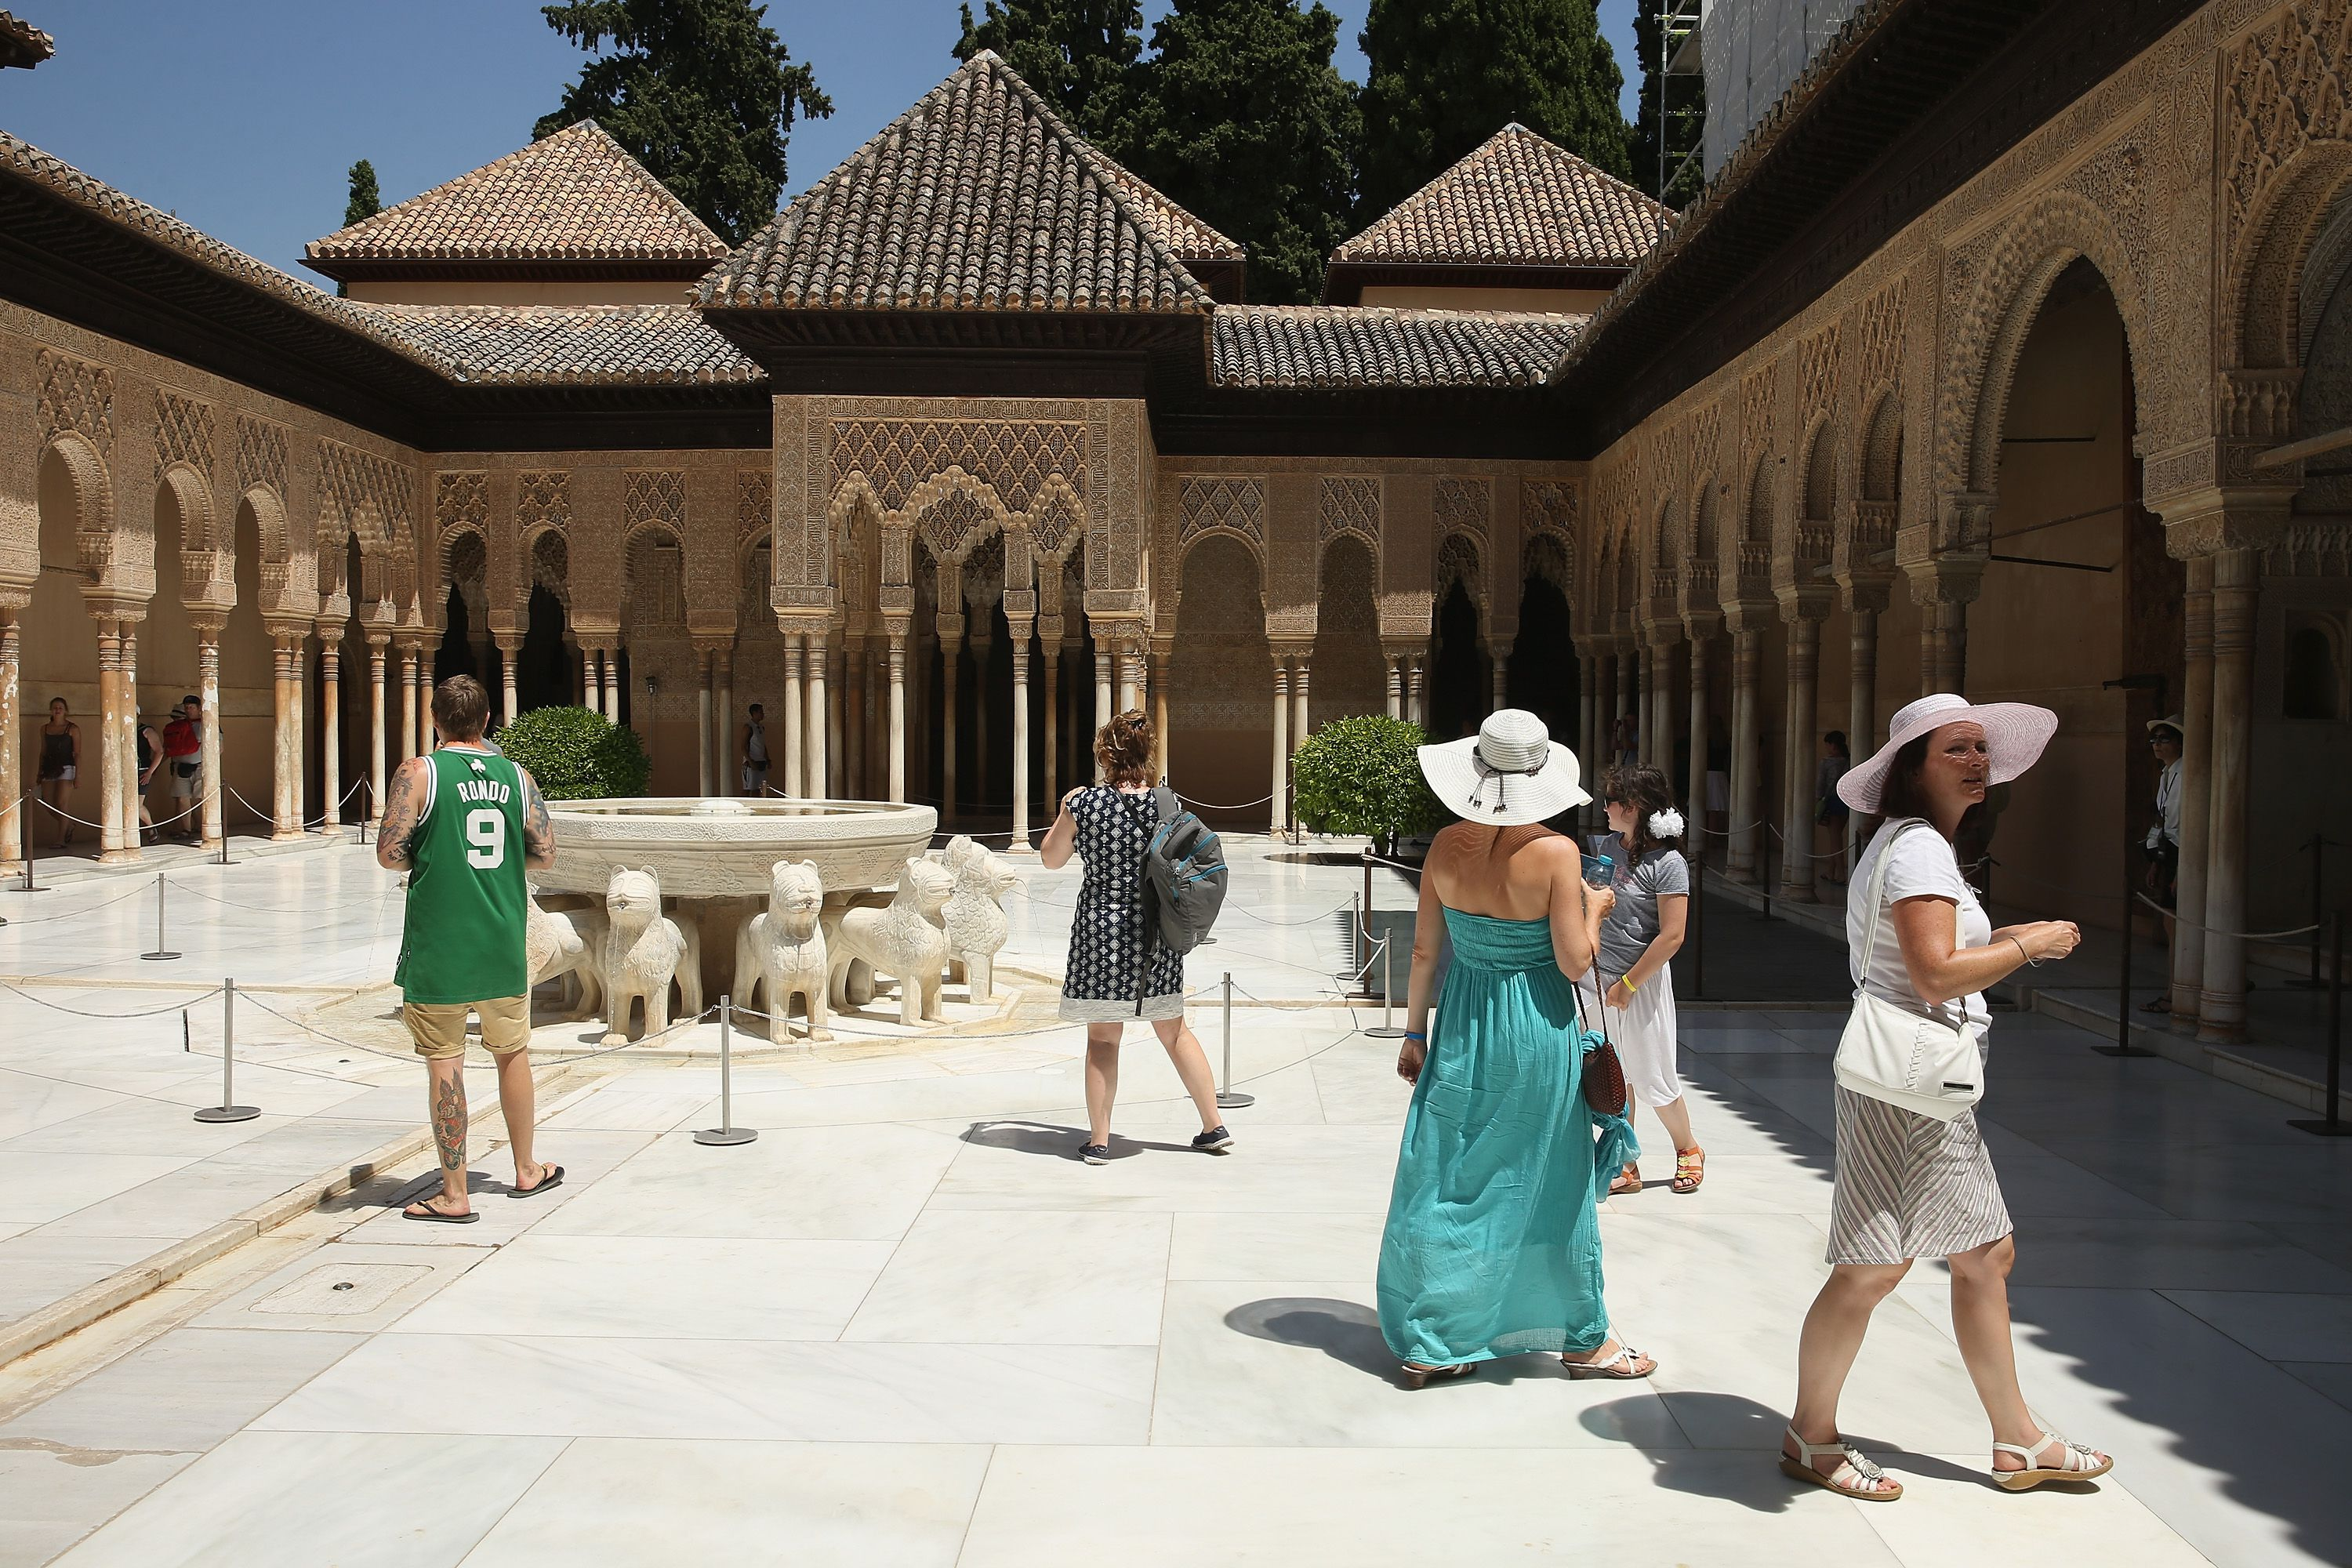 courtyard surrounded by carved columns leading to palaces, sculpture fountain with lions in the center, Alhambra Tourists mingle